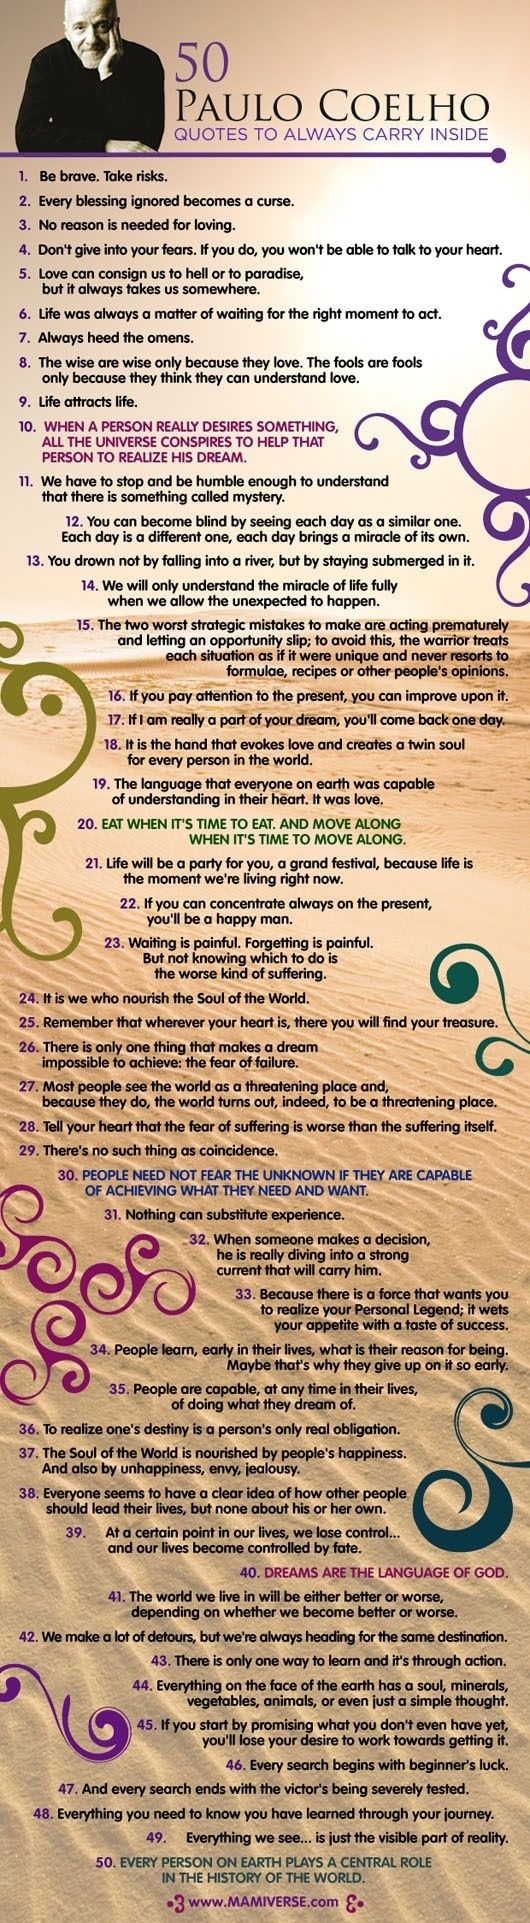 50 Paulo Coelho Quotes for the Soul  {Source: infographicaday.com via John Kremer on Pinterest}